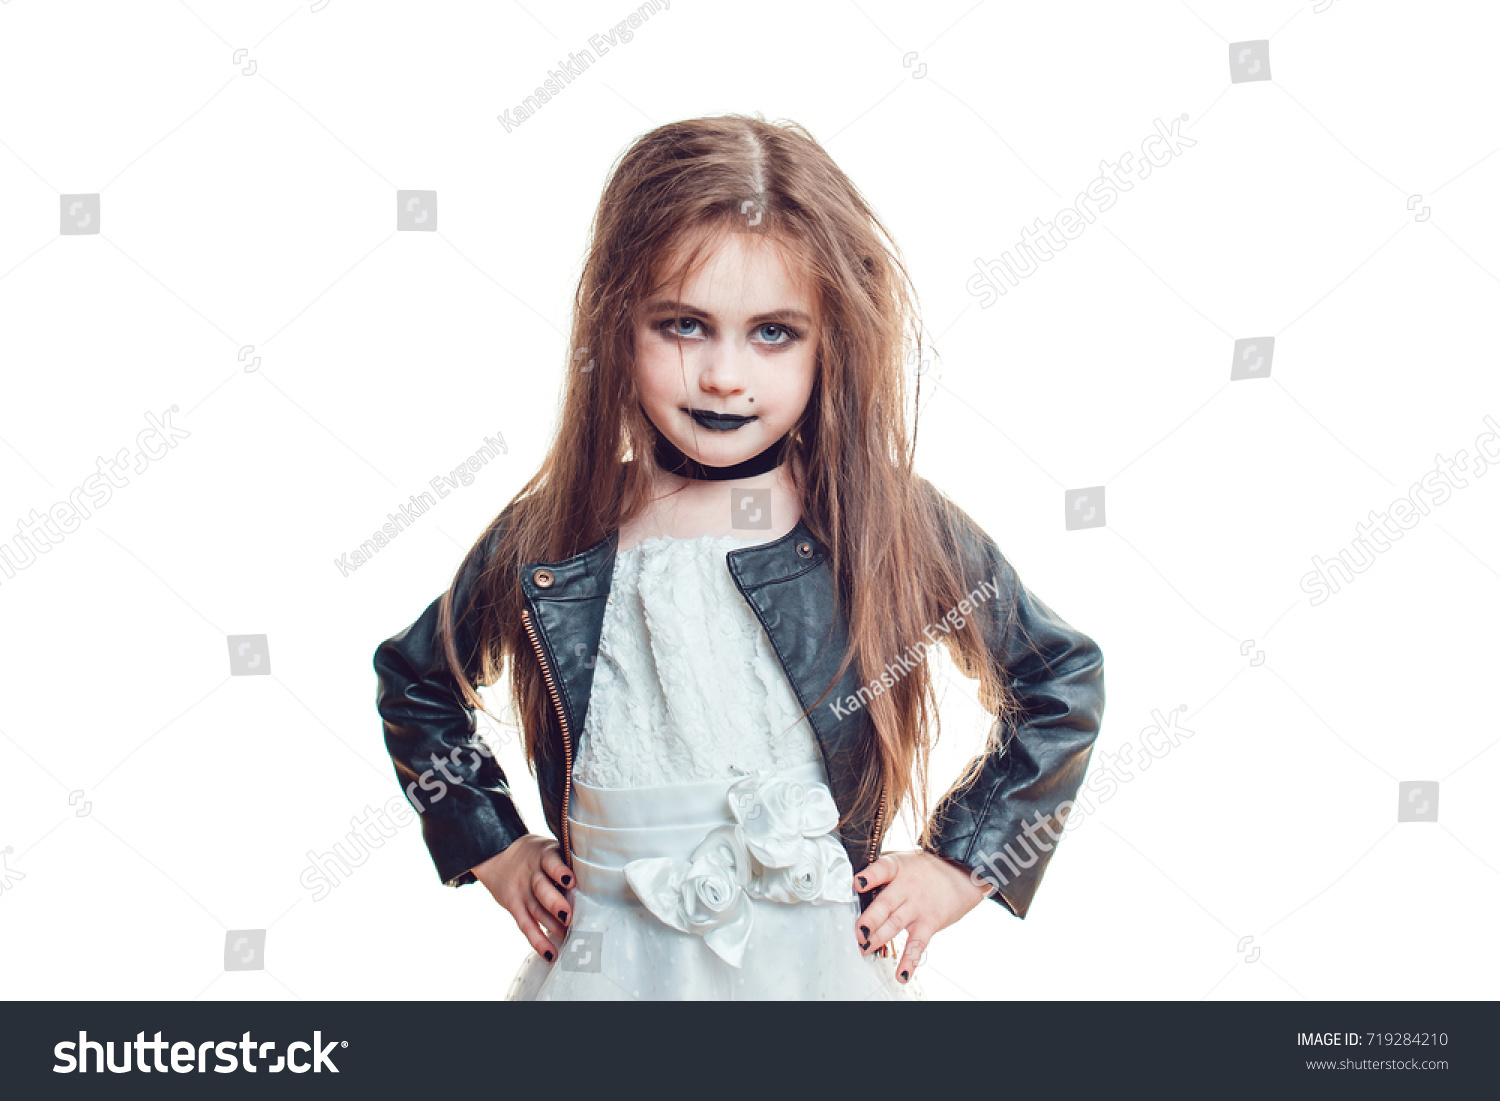 girl in bride of chucky doll costume isolated on white halloween